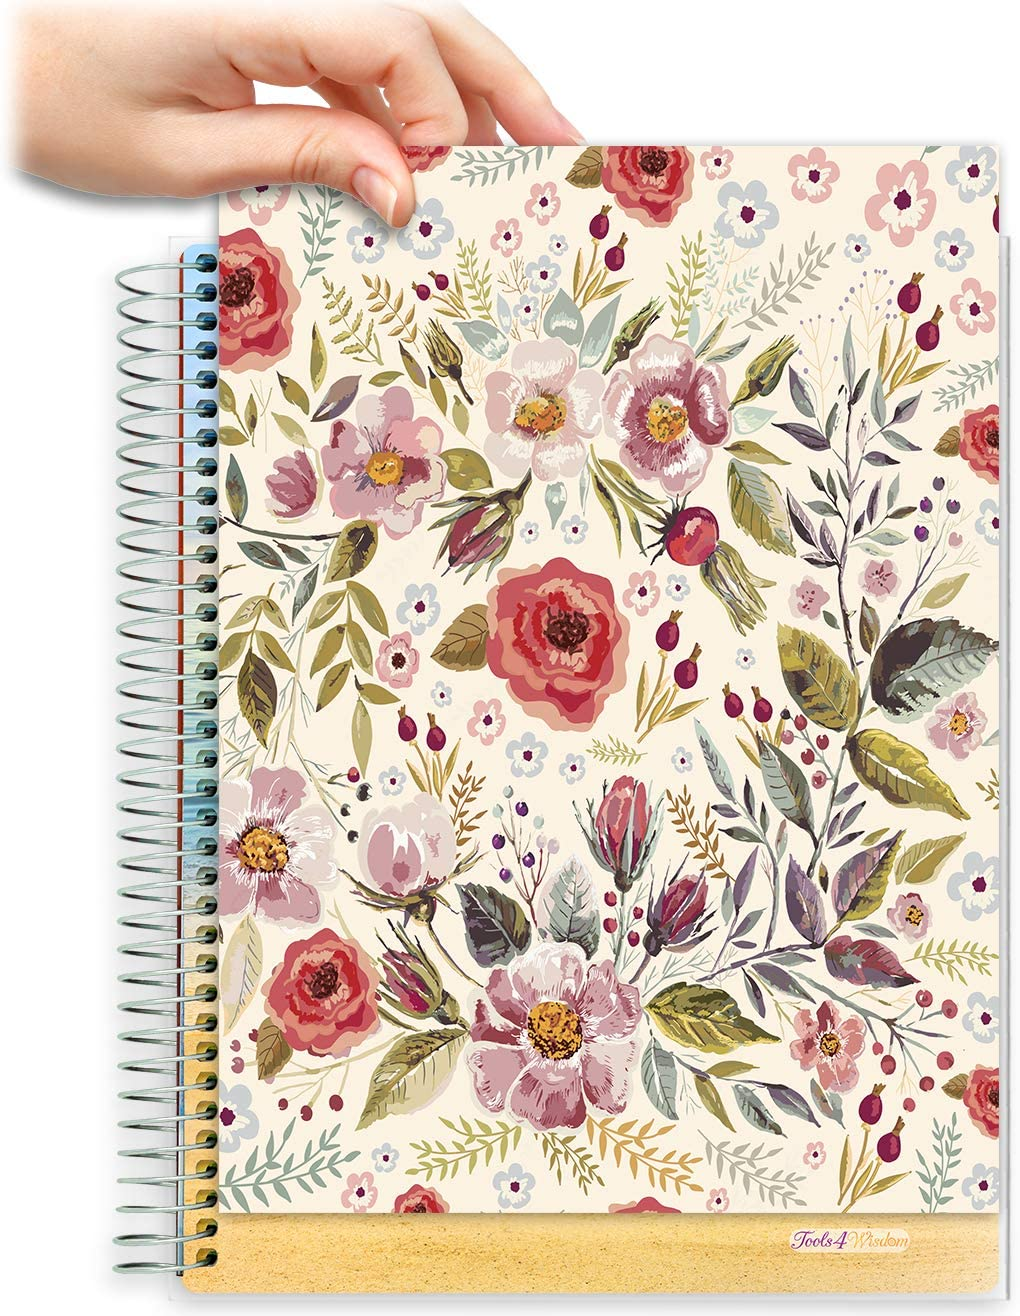 8.5x11 Customizable Softcover Planner • April 2021 to June 2022 Academic Year •  Autumn Flowers